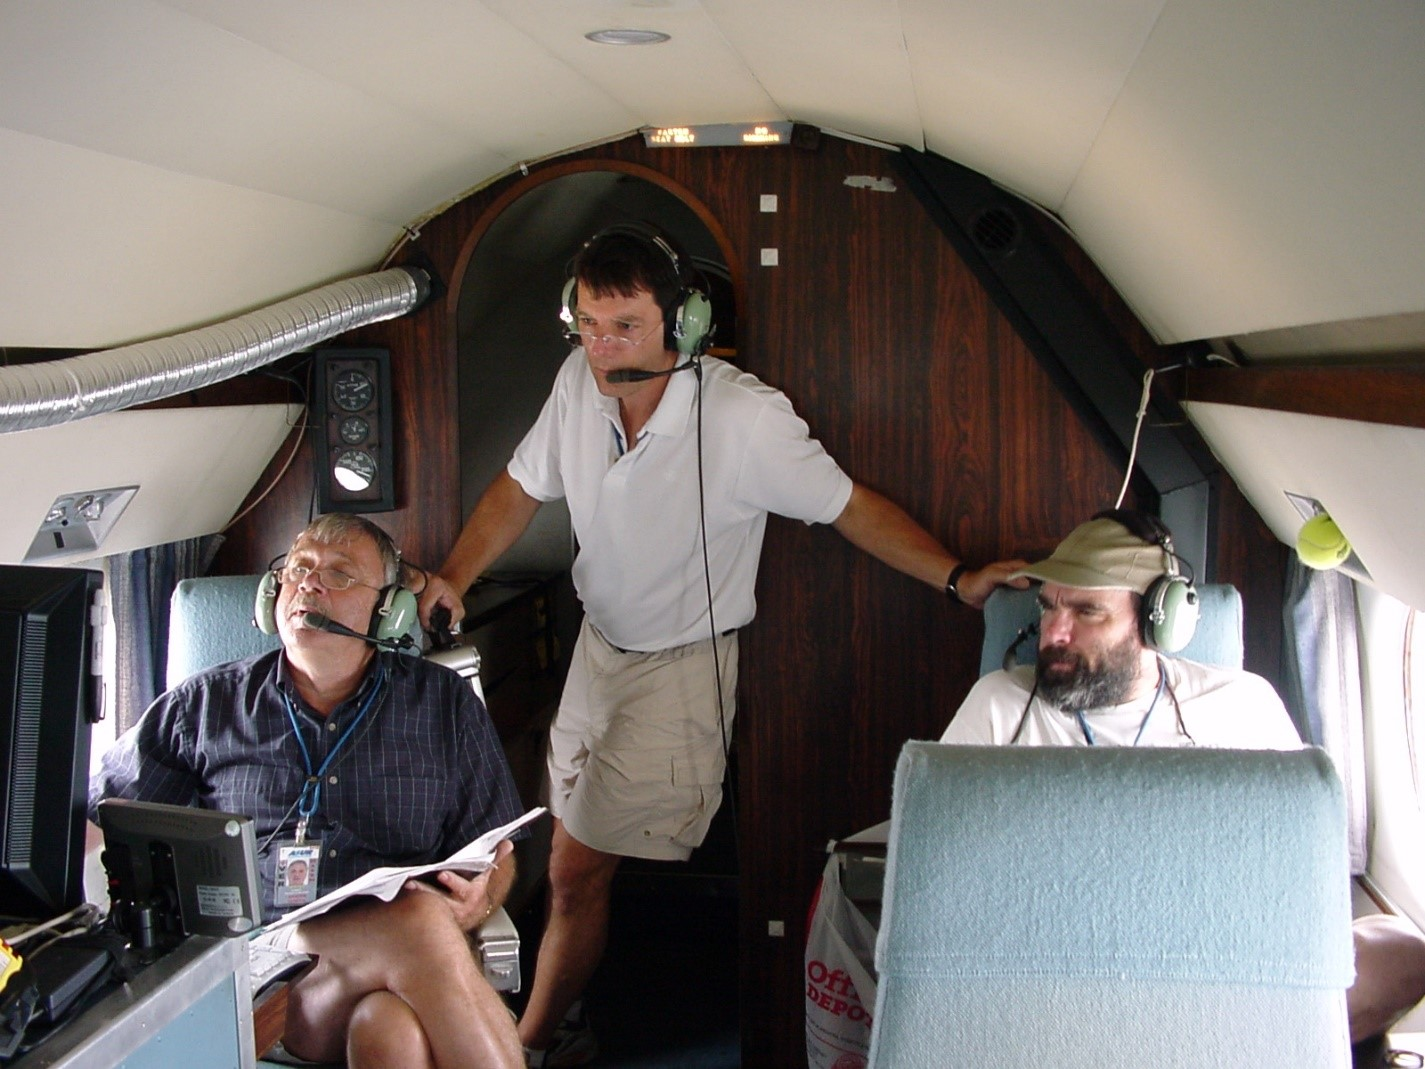 Stephen Springston, Peter Daum, and John Hubbe aboard G-1 aircraft